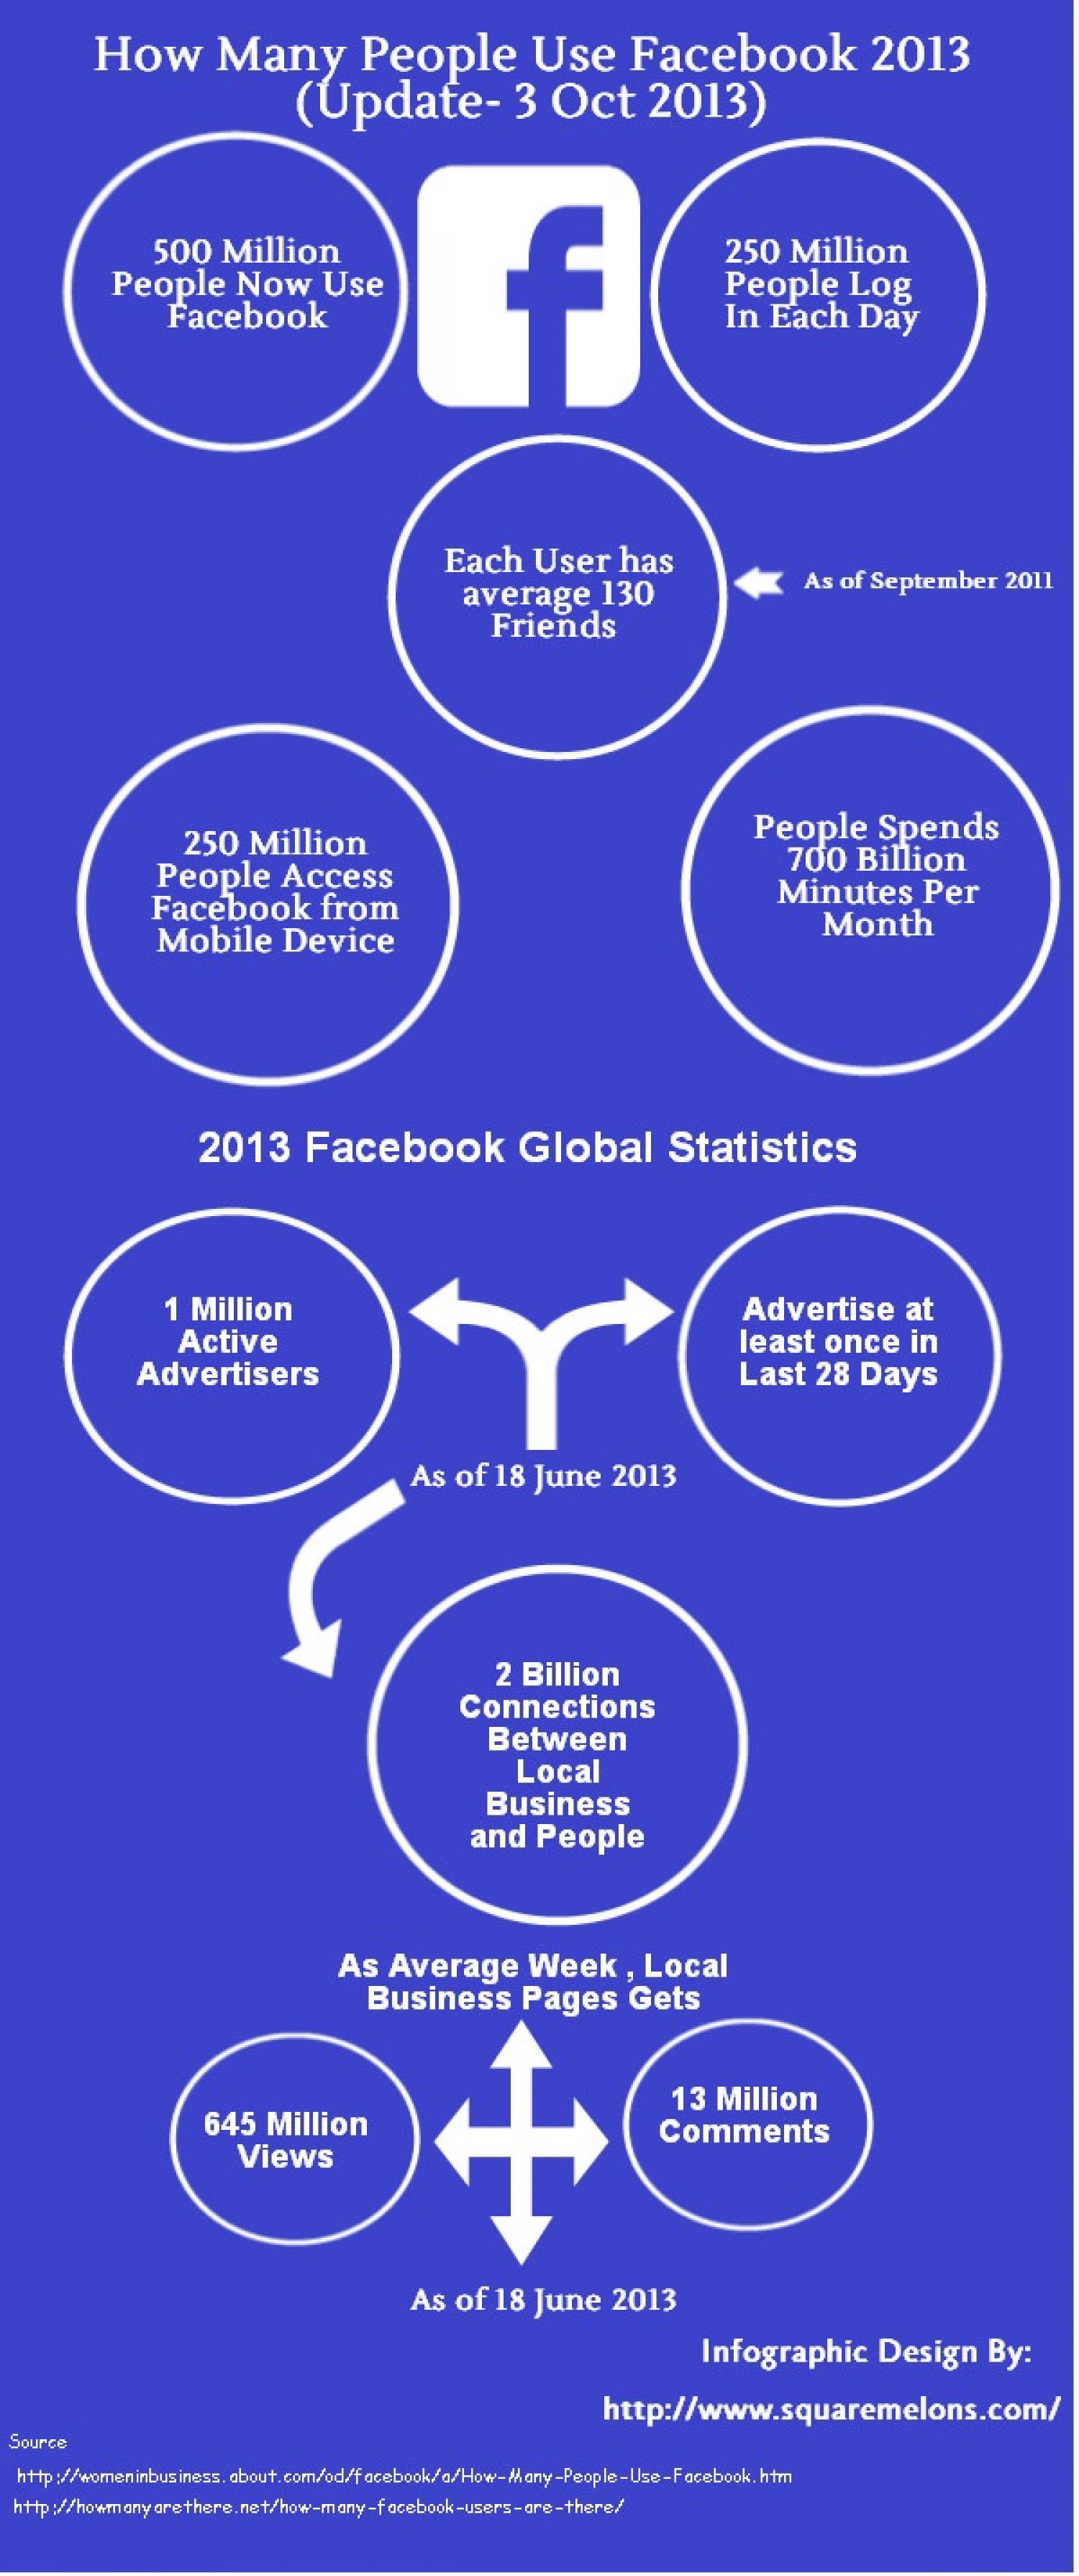 How Many People Use Facebook 2013 (Update- 3 October 2013